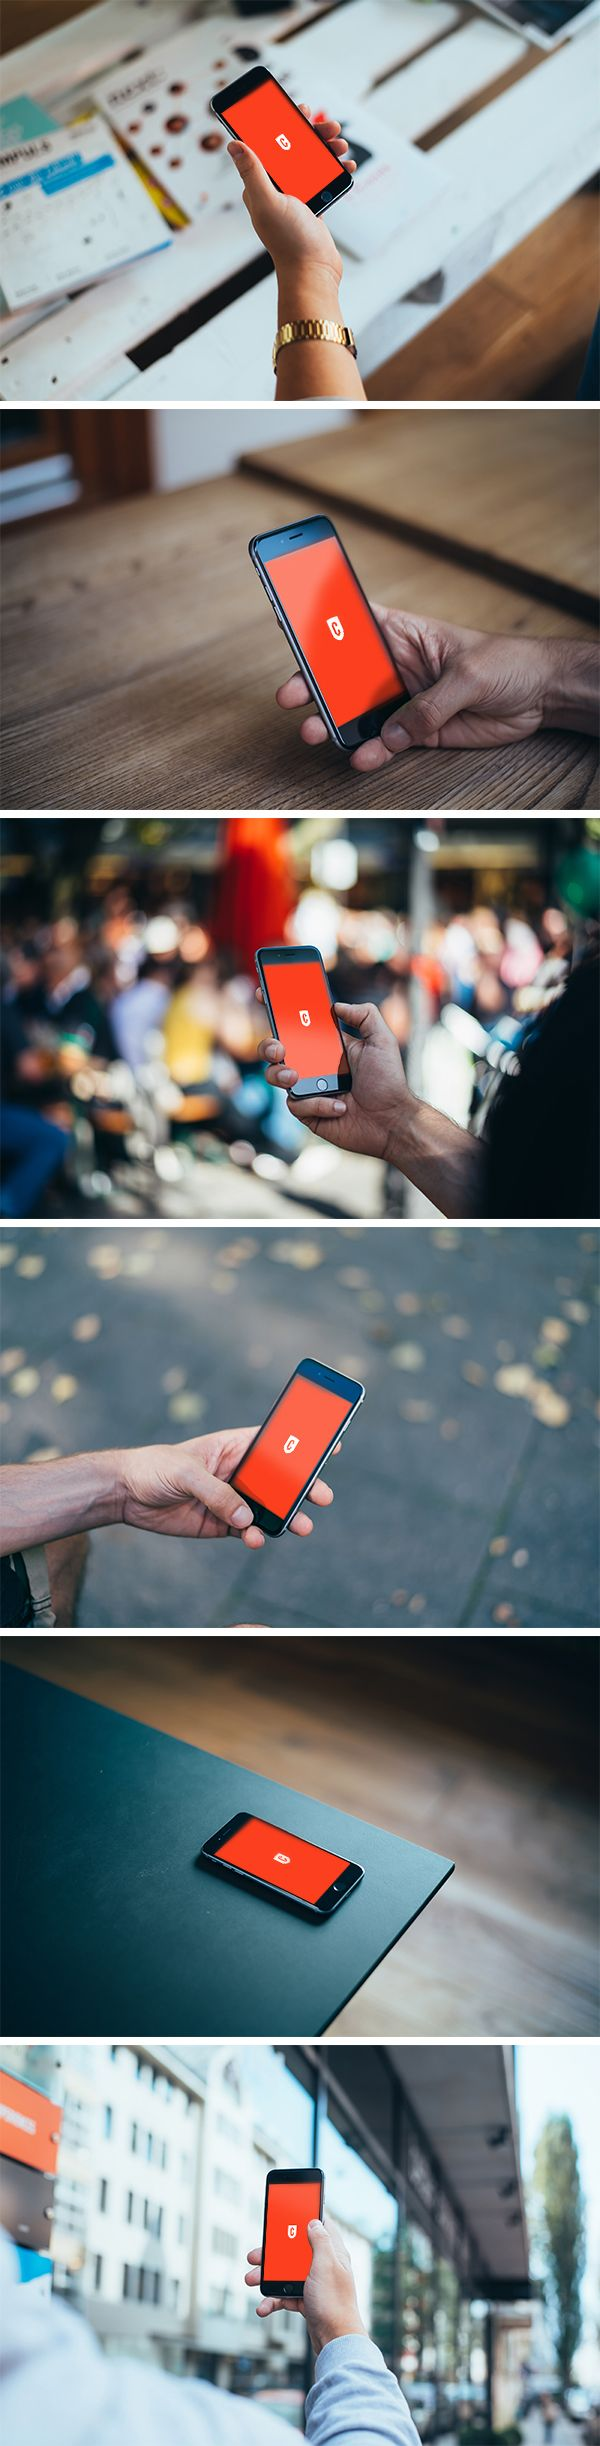 iPhone 6 Photorealistic MockUps | GraphicBurger